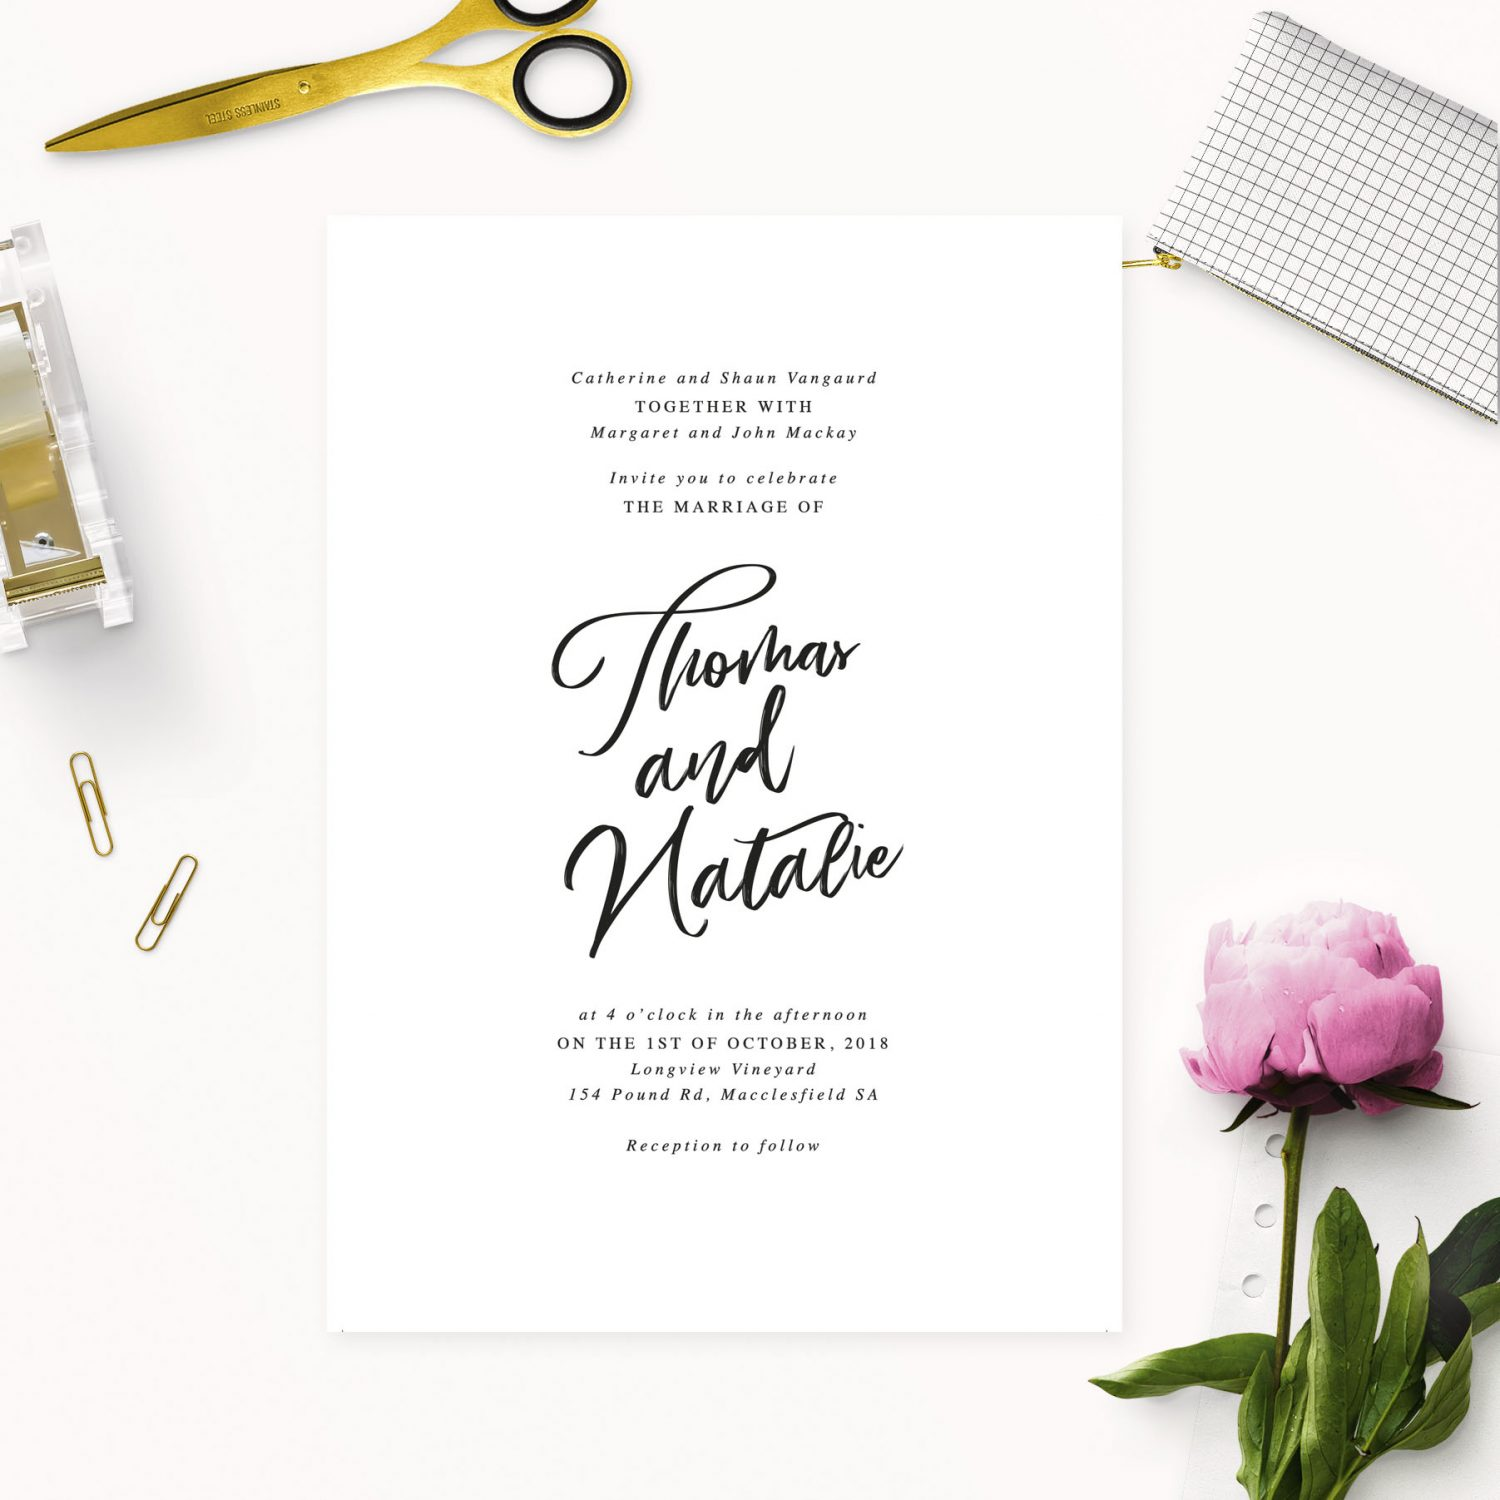 Simple Elegant Writing Wedding Invitations - Elegant Calligraphy